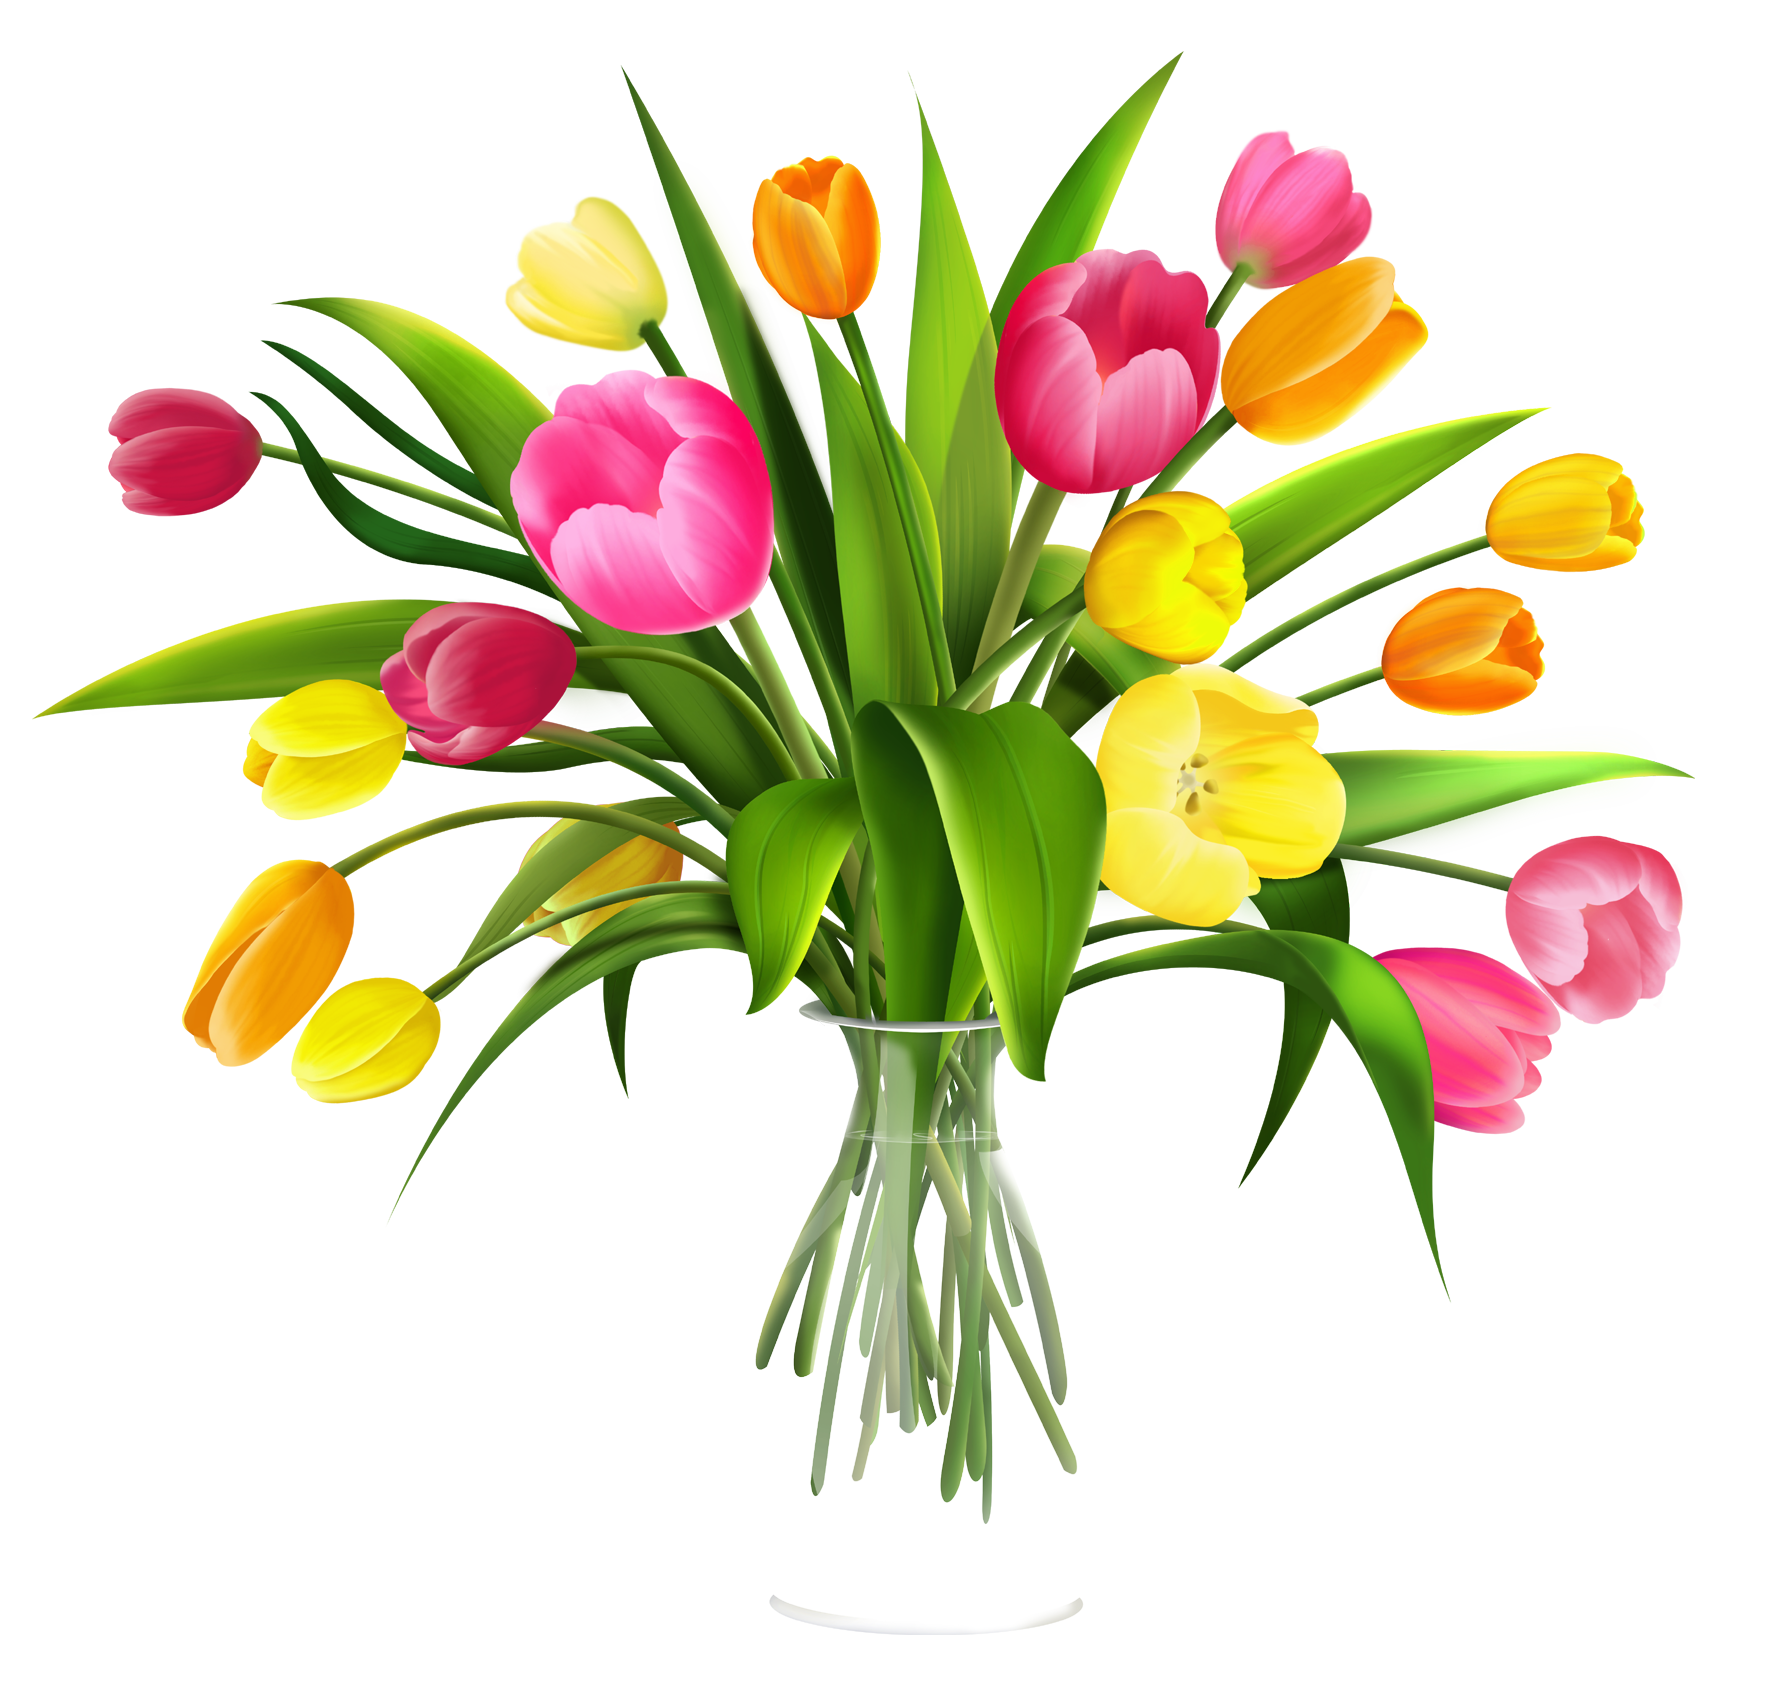 Floral bouquet clipart free image royalty free download Free Clip Art Flowers in Vase | Use these free images for your ... image royalty free download